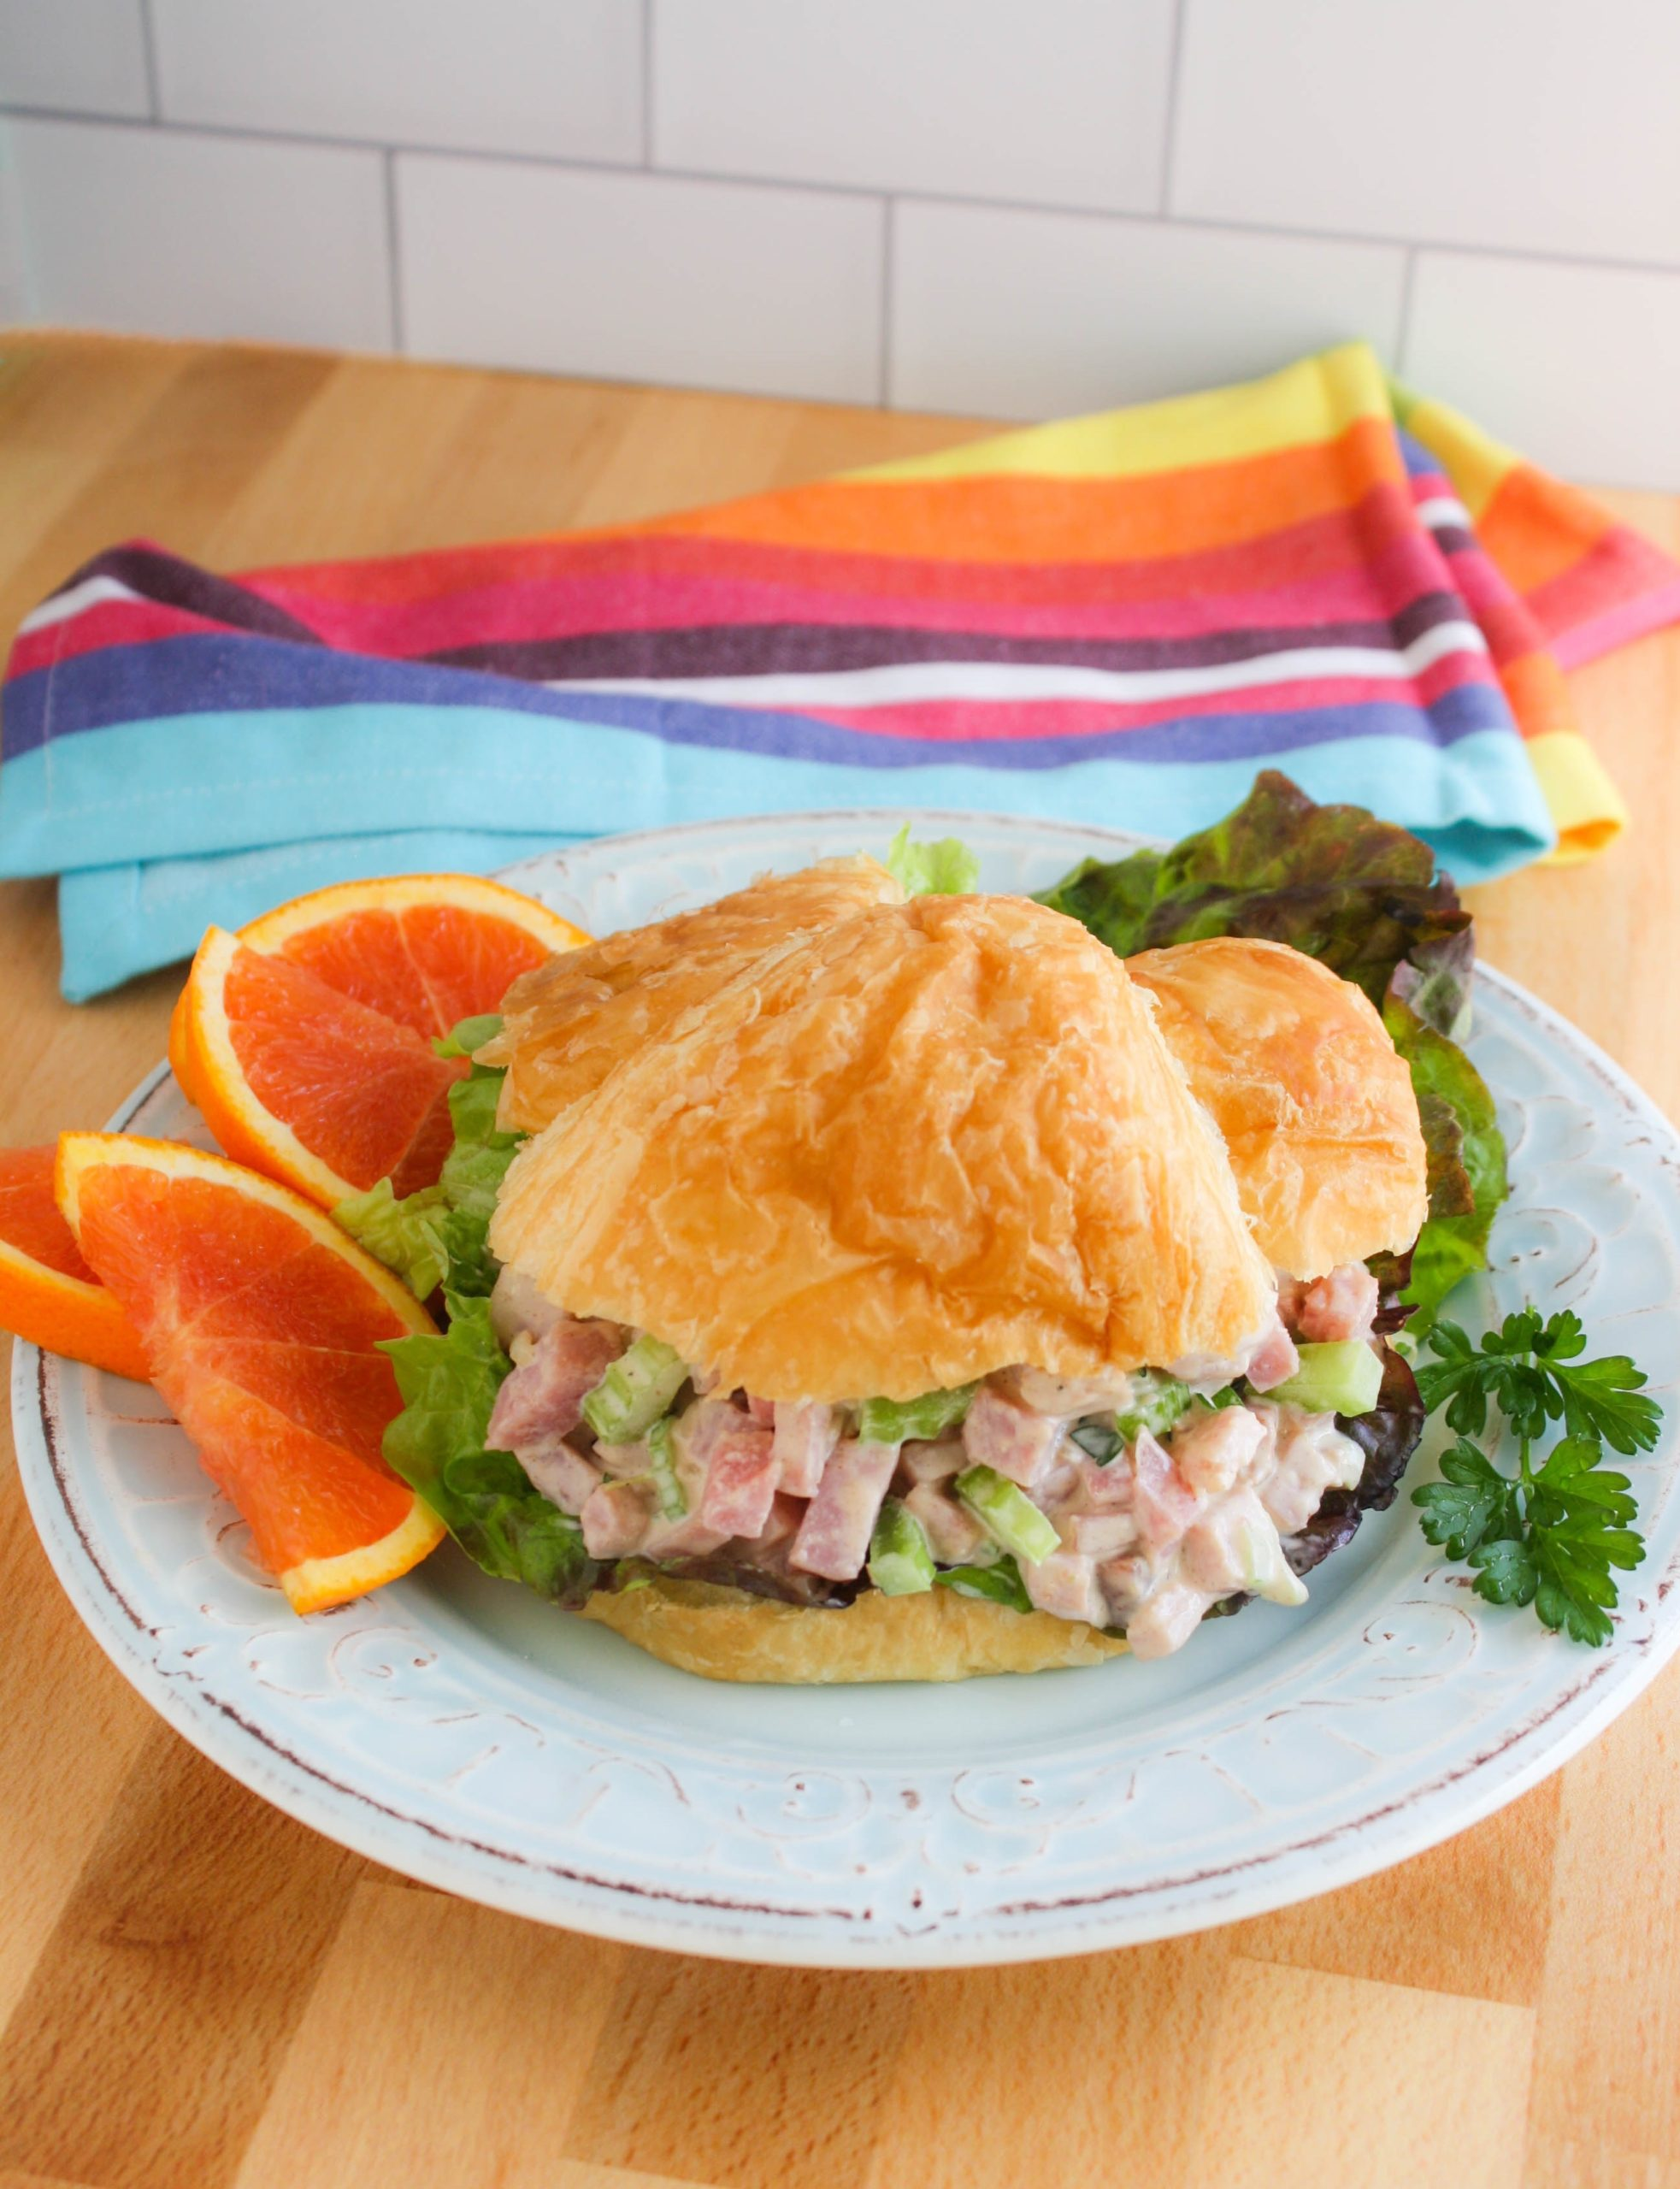 Ham Salad on a croissant for a tasty sandwich!